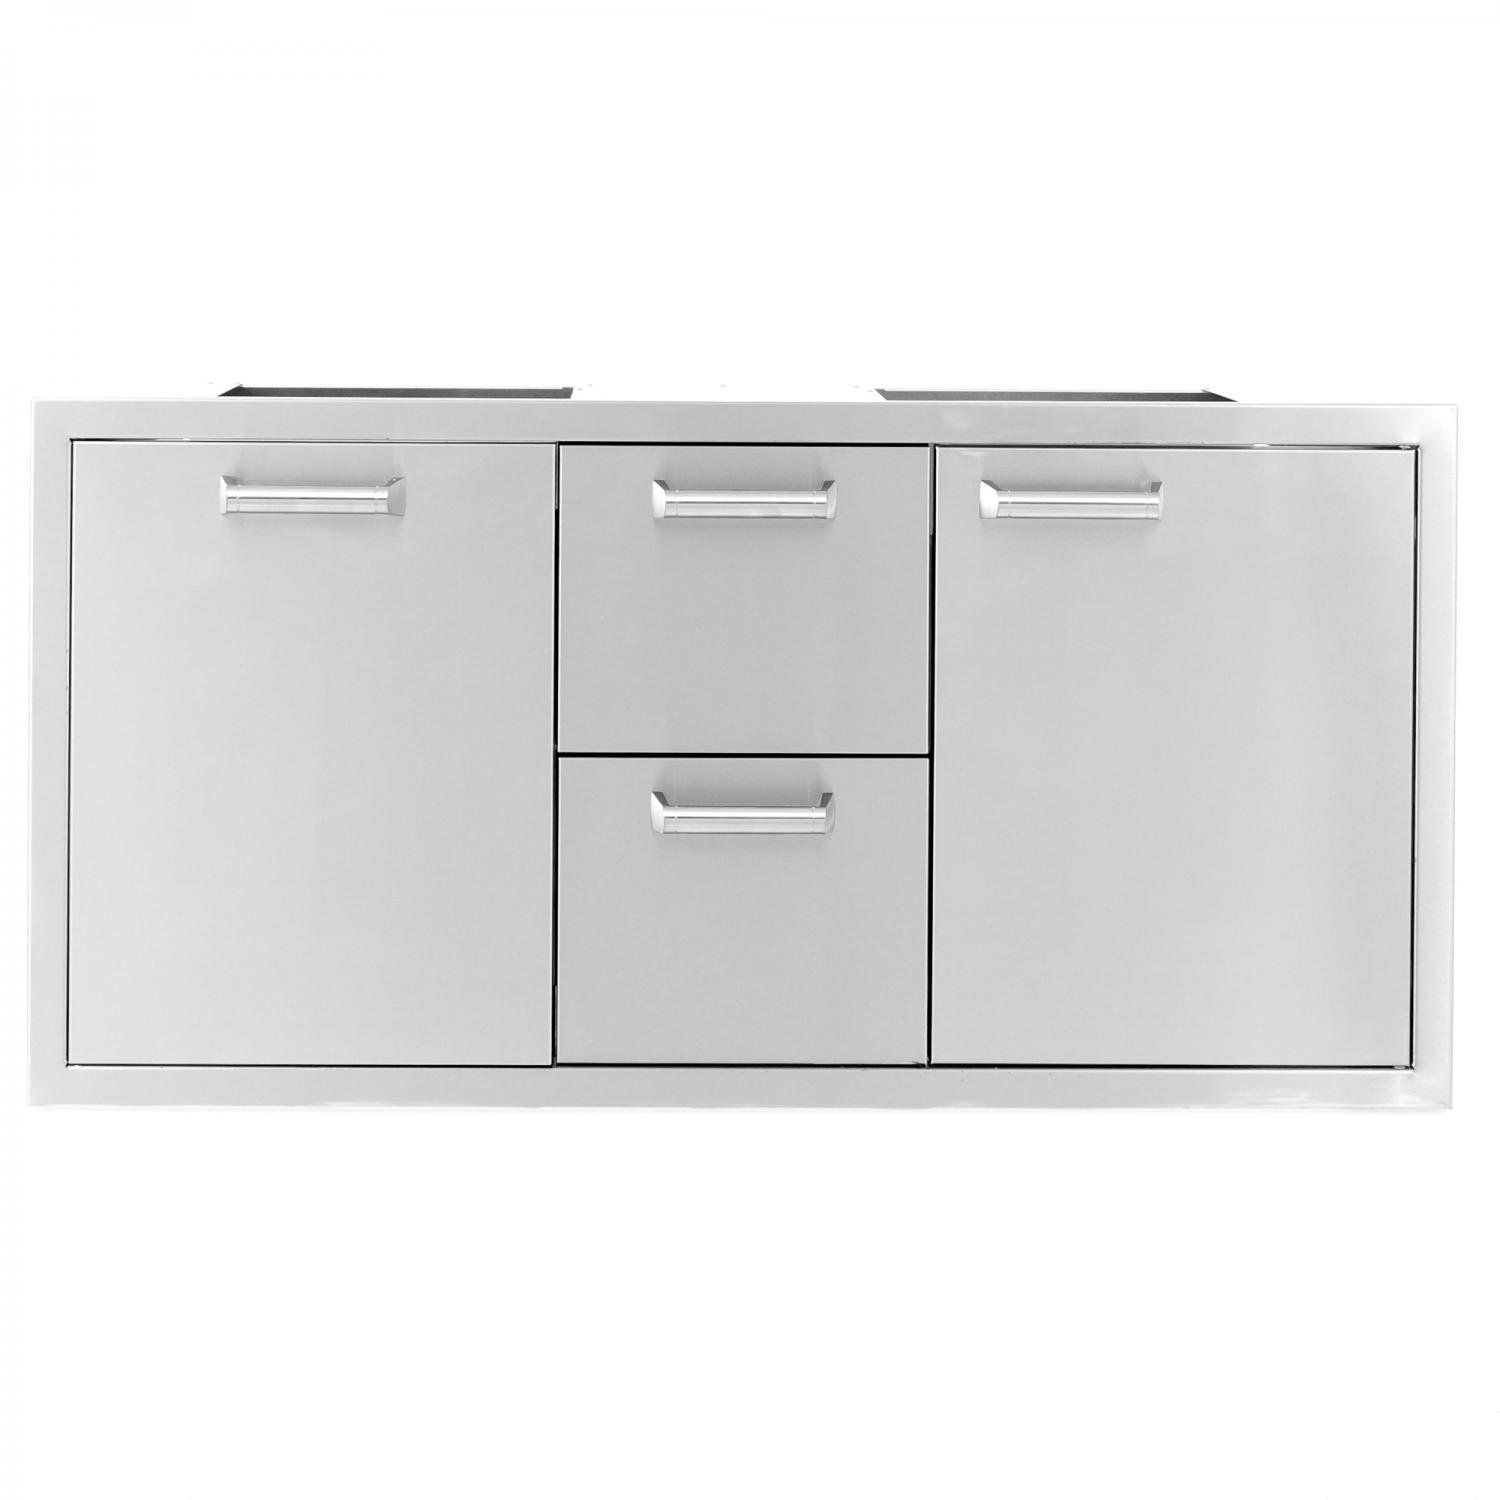 BBQGuys.com Sonoma Series 42-inch Stainless Steel Door, Double Drawer & Roll-Out Trash Bin Combo